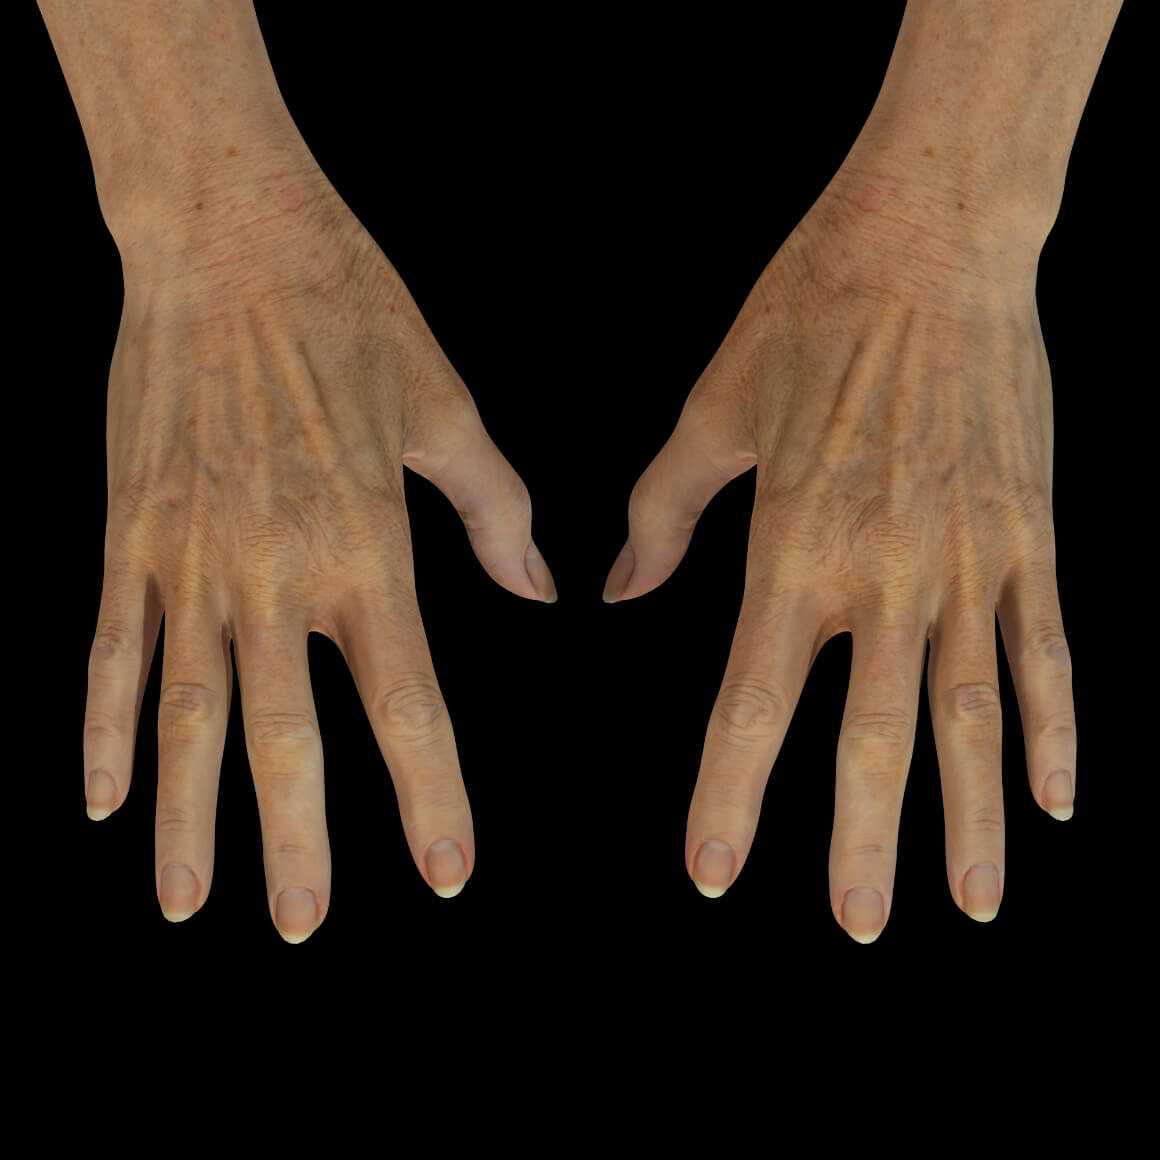 A Clinique Chloé female patient's hands showing wrinkles and prominent tendons